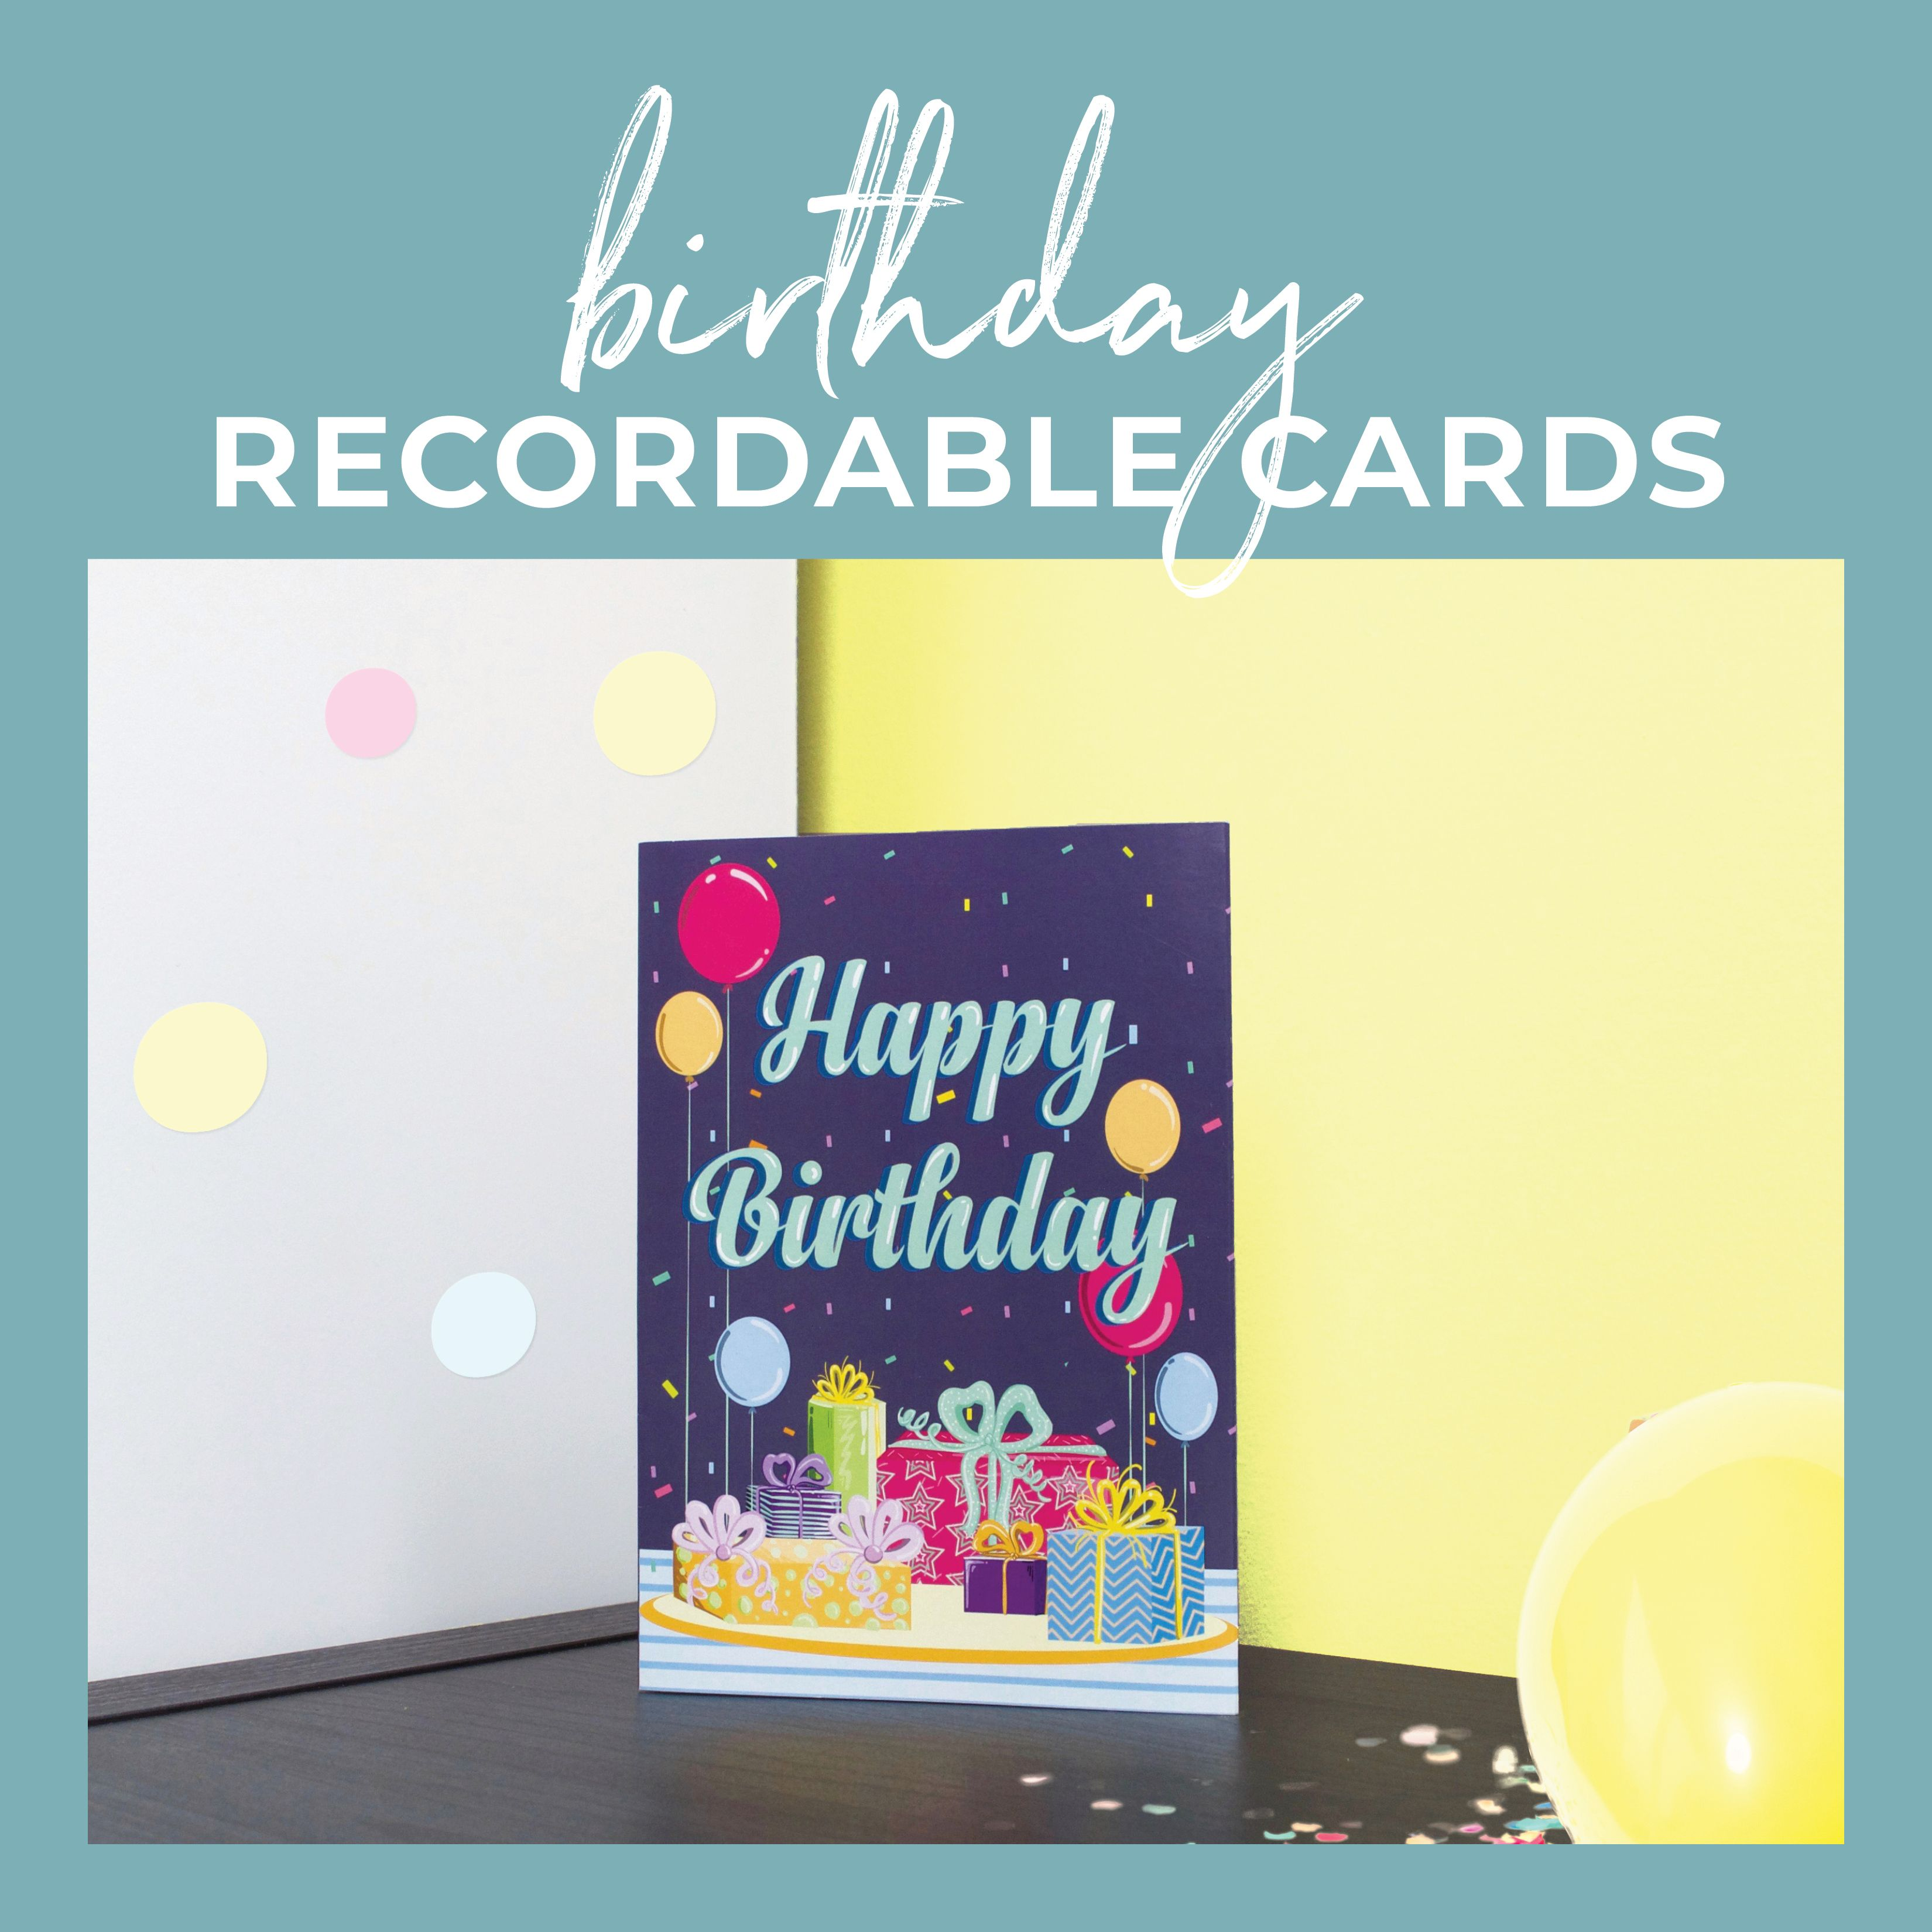 Send Love And Happy Wishes To Friends And Family With This Cheerful Birthday Card Our Birthday Cards Are T Musical Birthday Cards Happy Wishes Birthday Cards